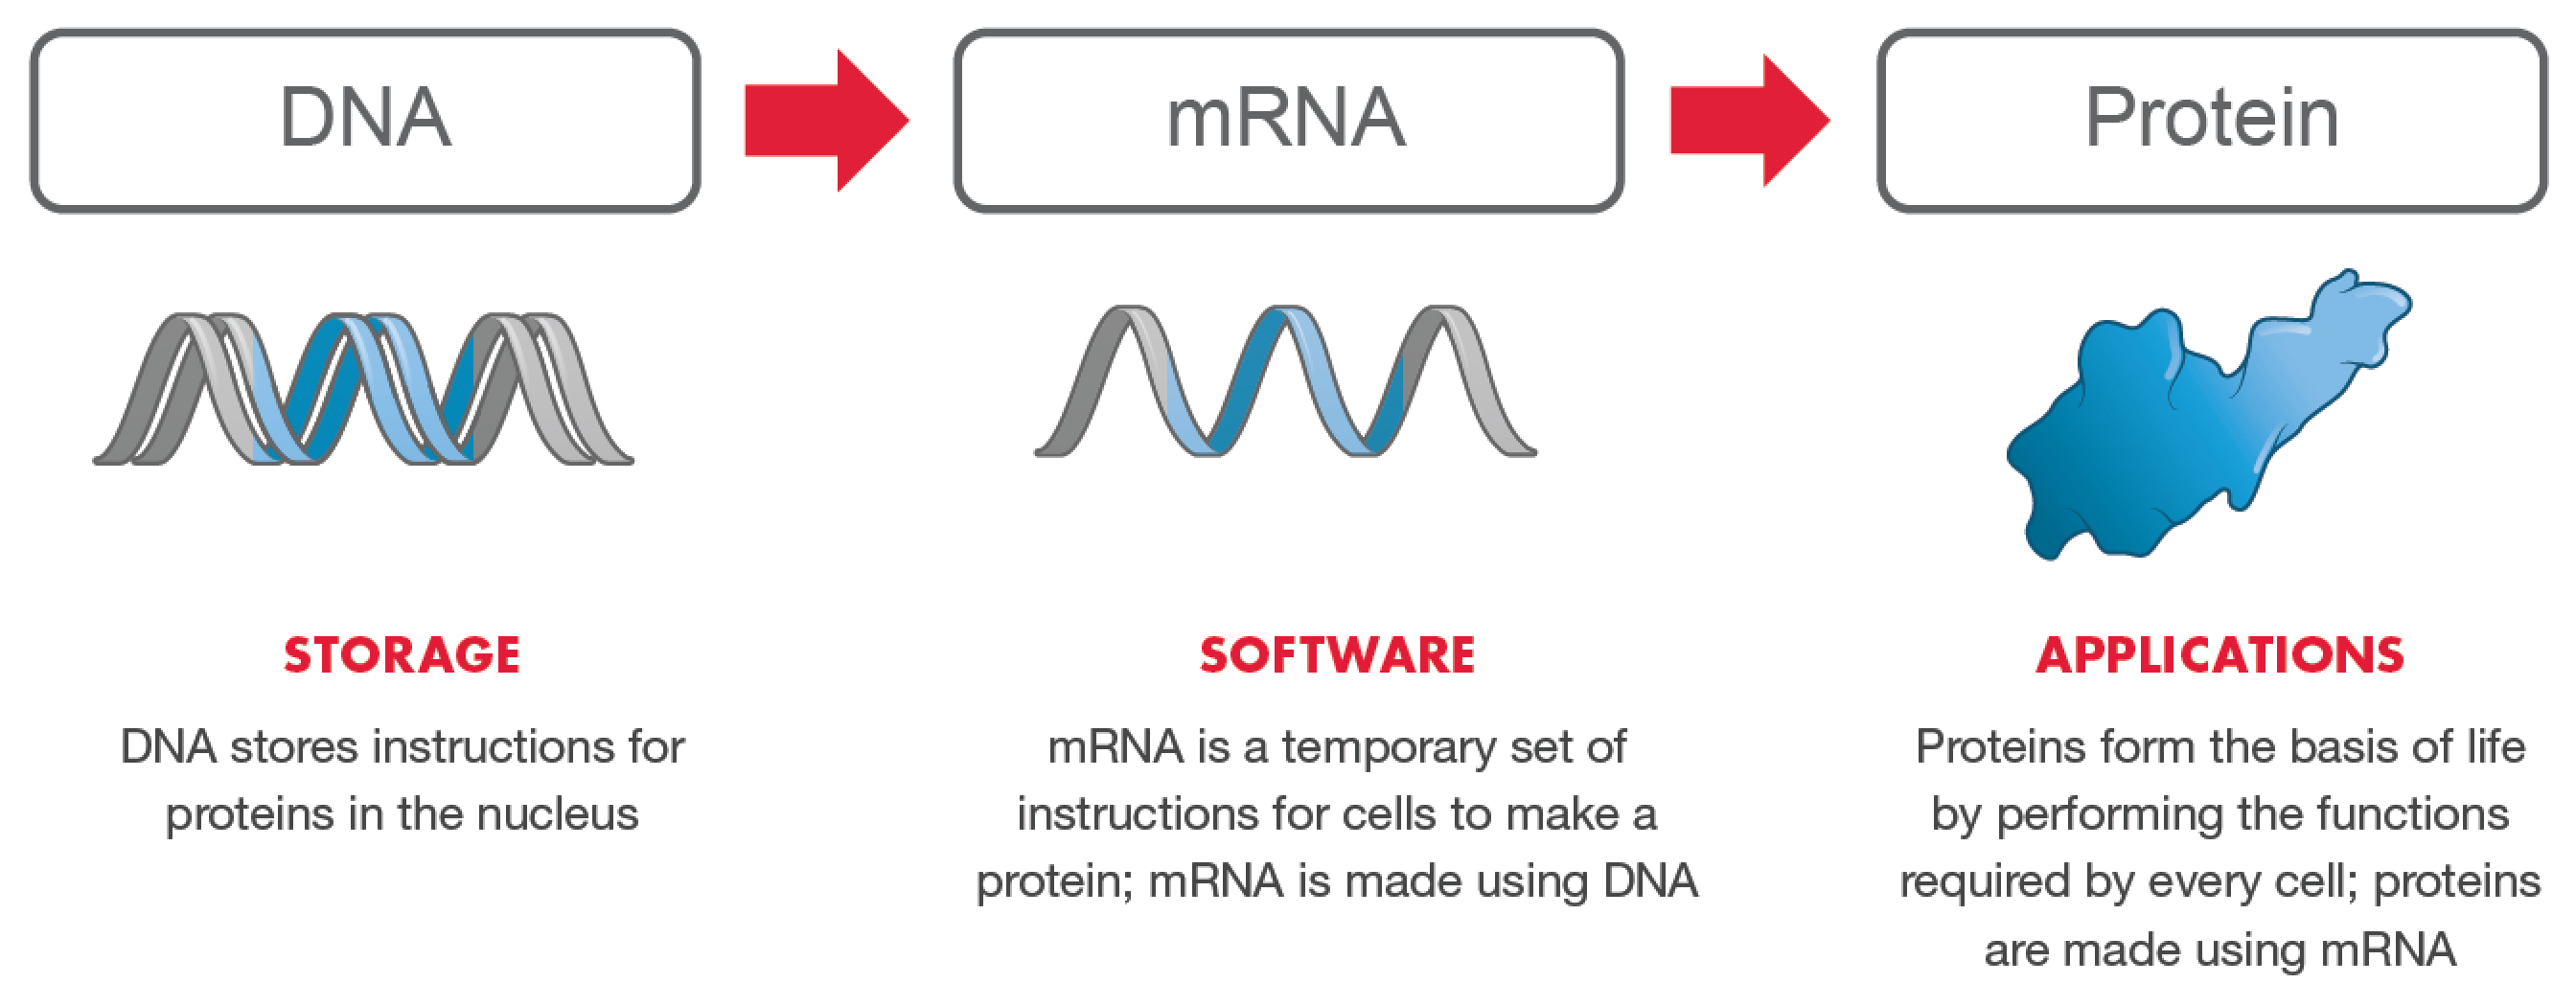 Experimental COVID-19 mRNA Vaccines Are Operating System Designed To Program Human DNA